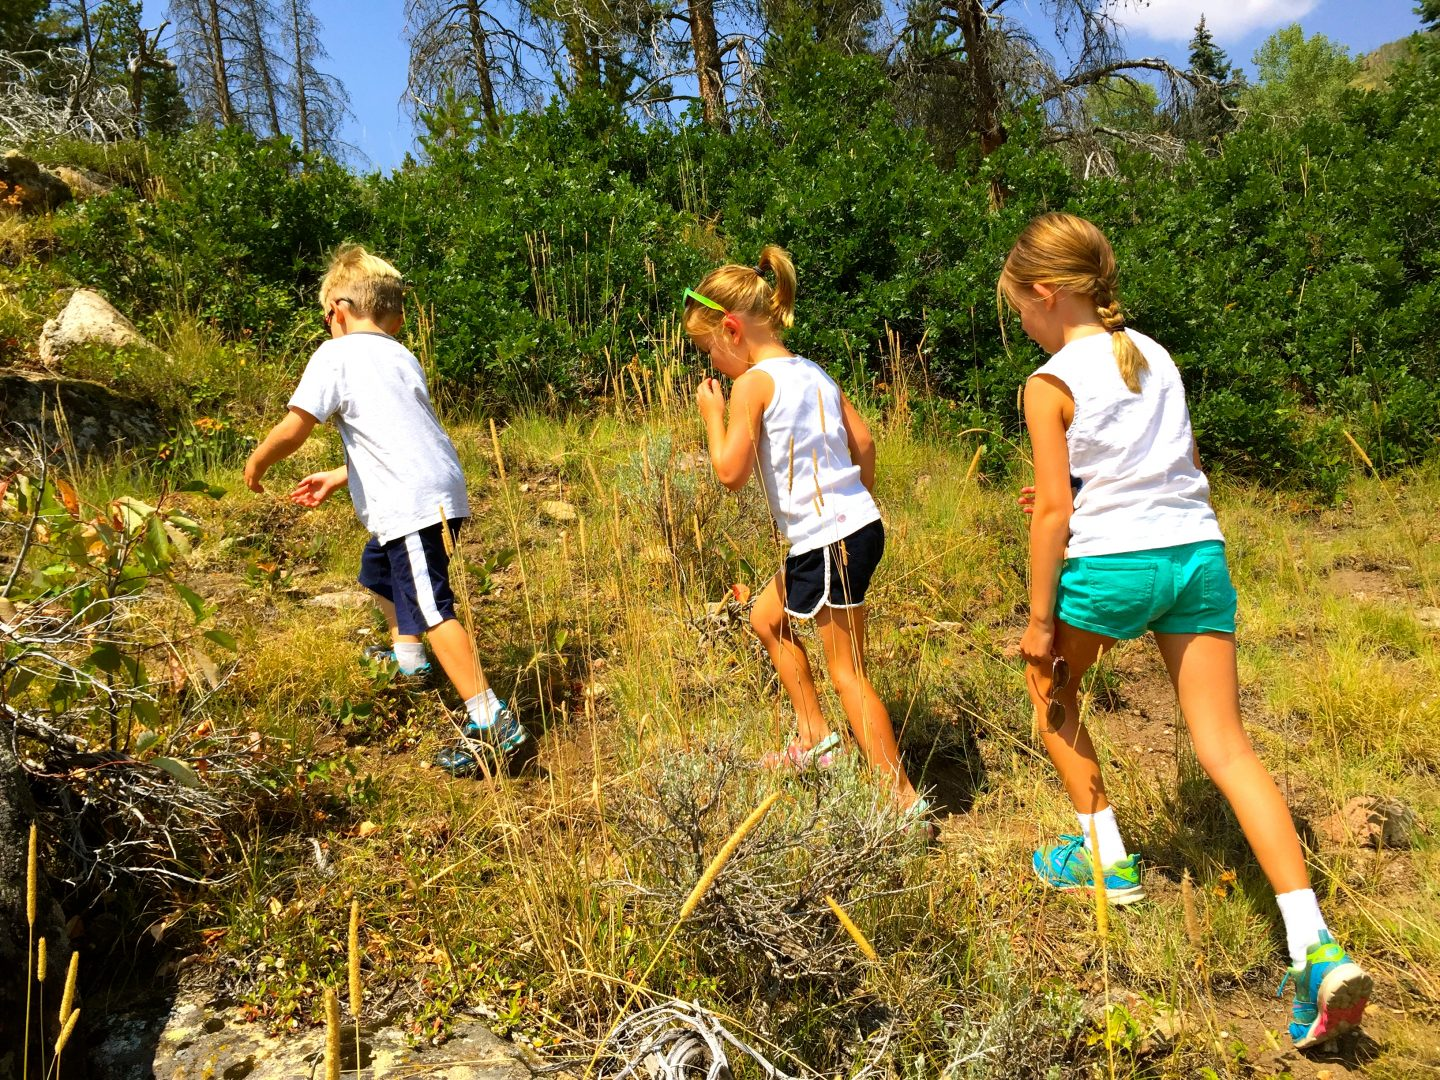 Hiking in Steamboat Springs, CO.